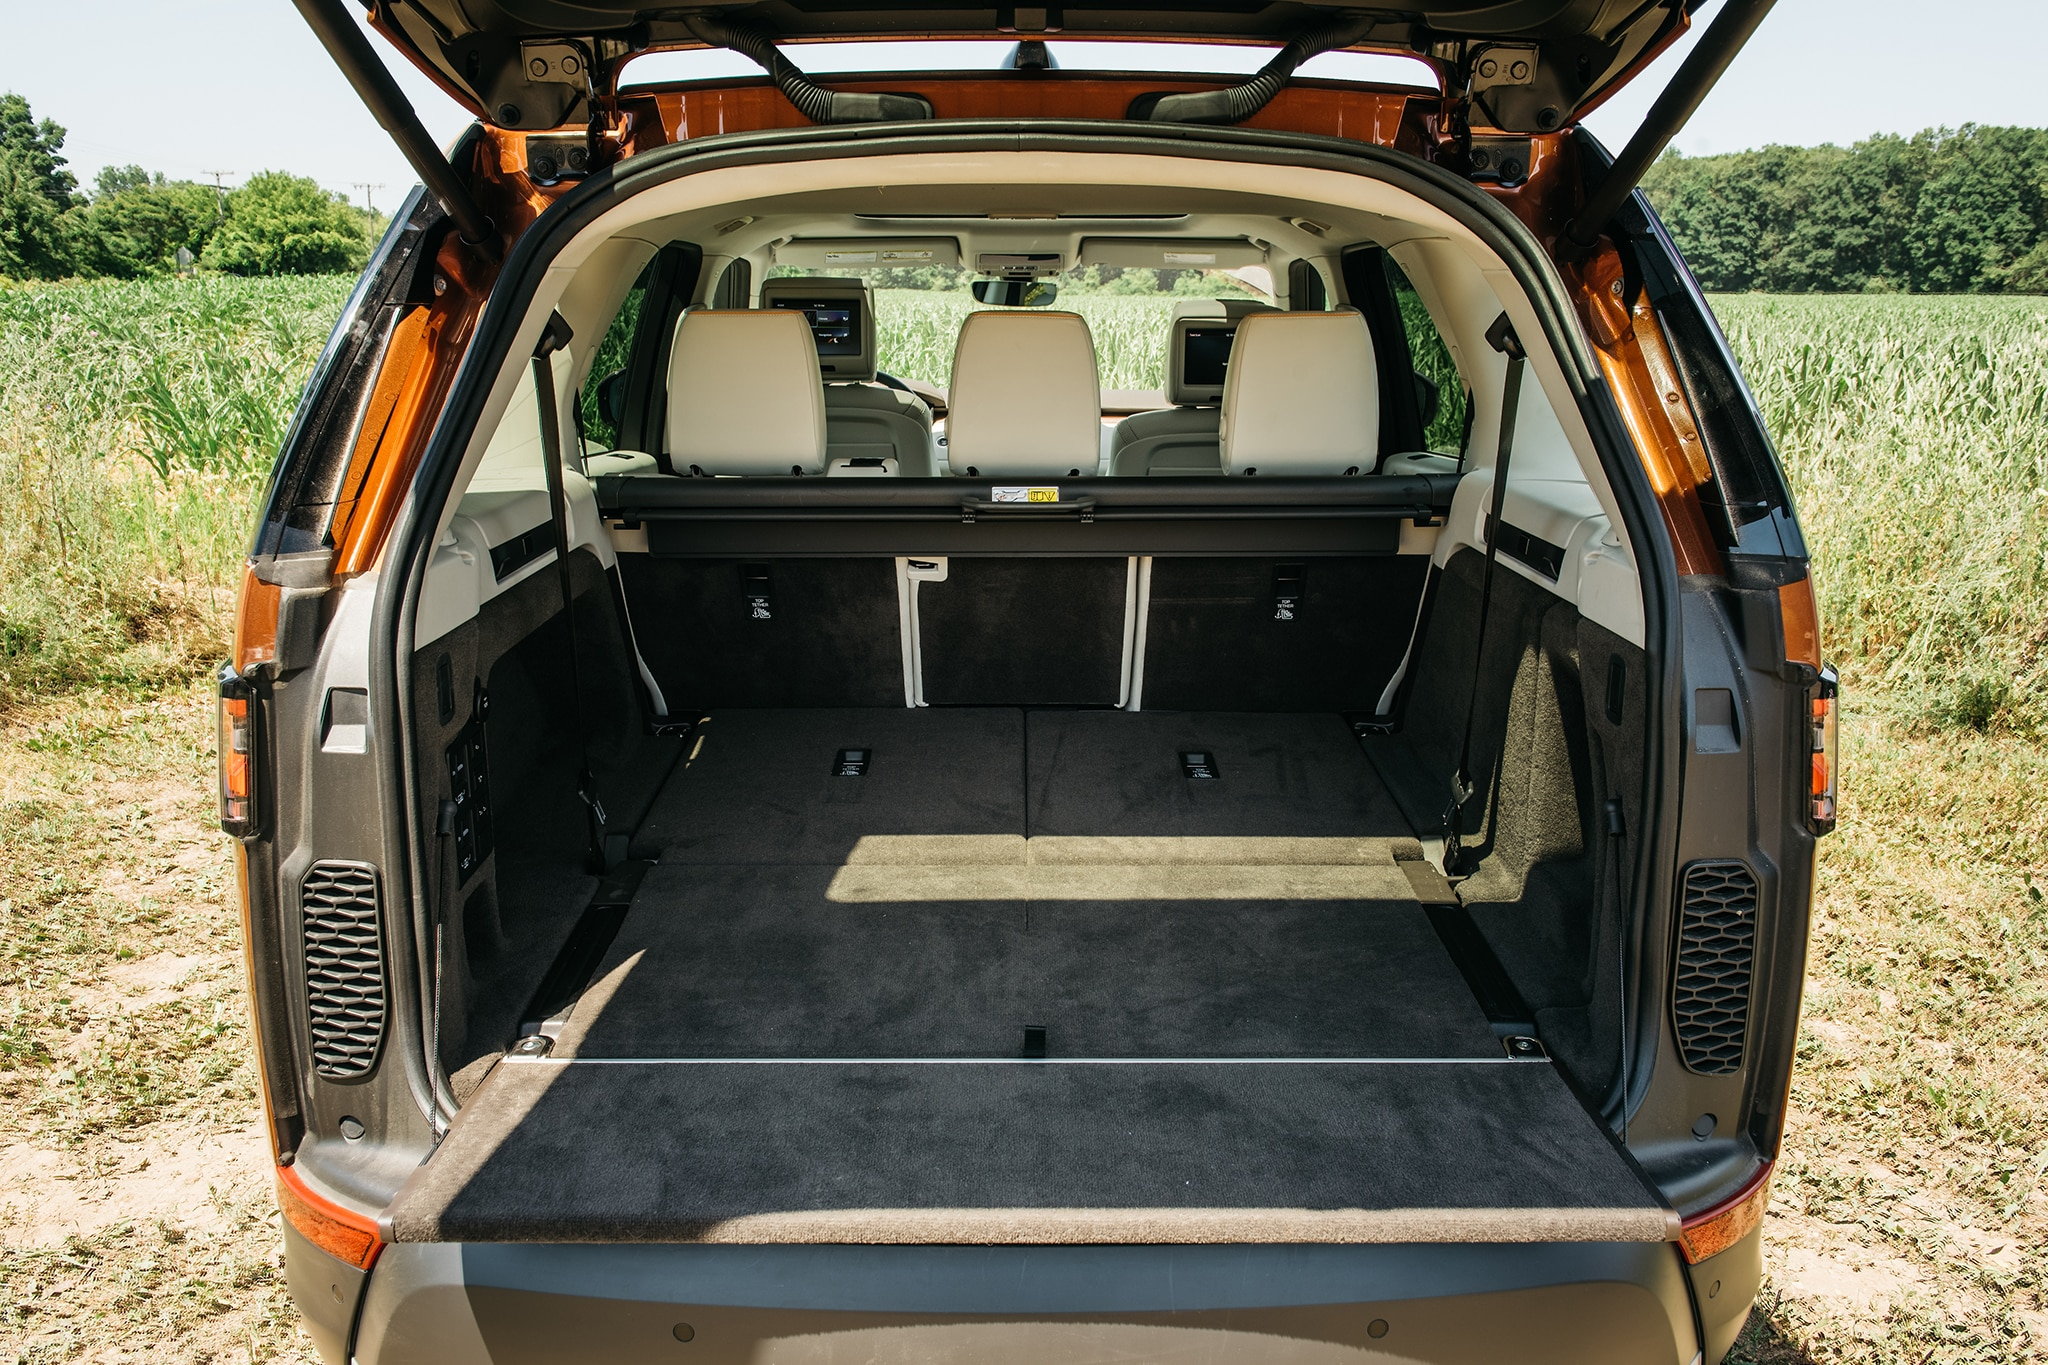 2017 Land Rover Discovery Td6 HSE Cargo Space